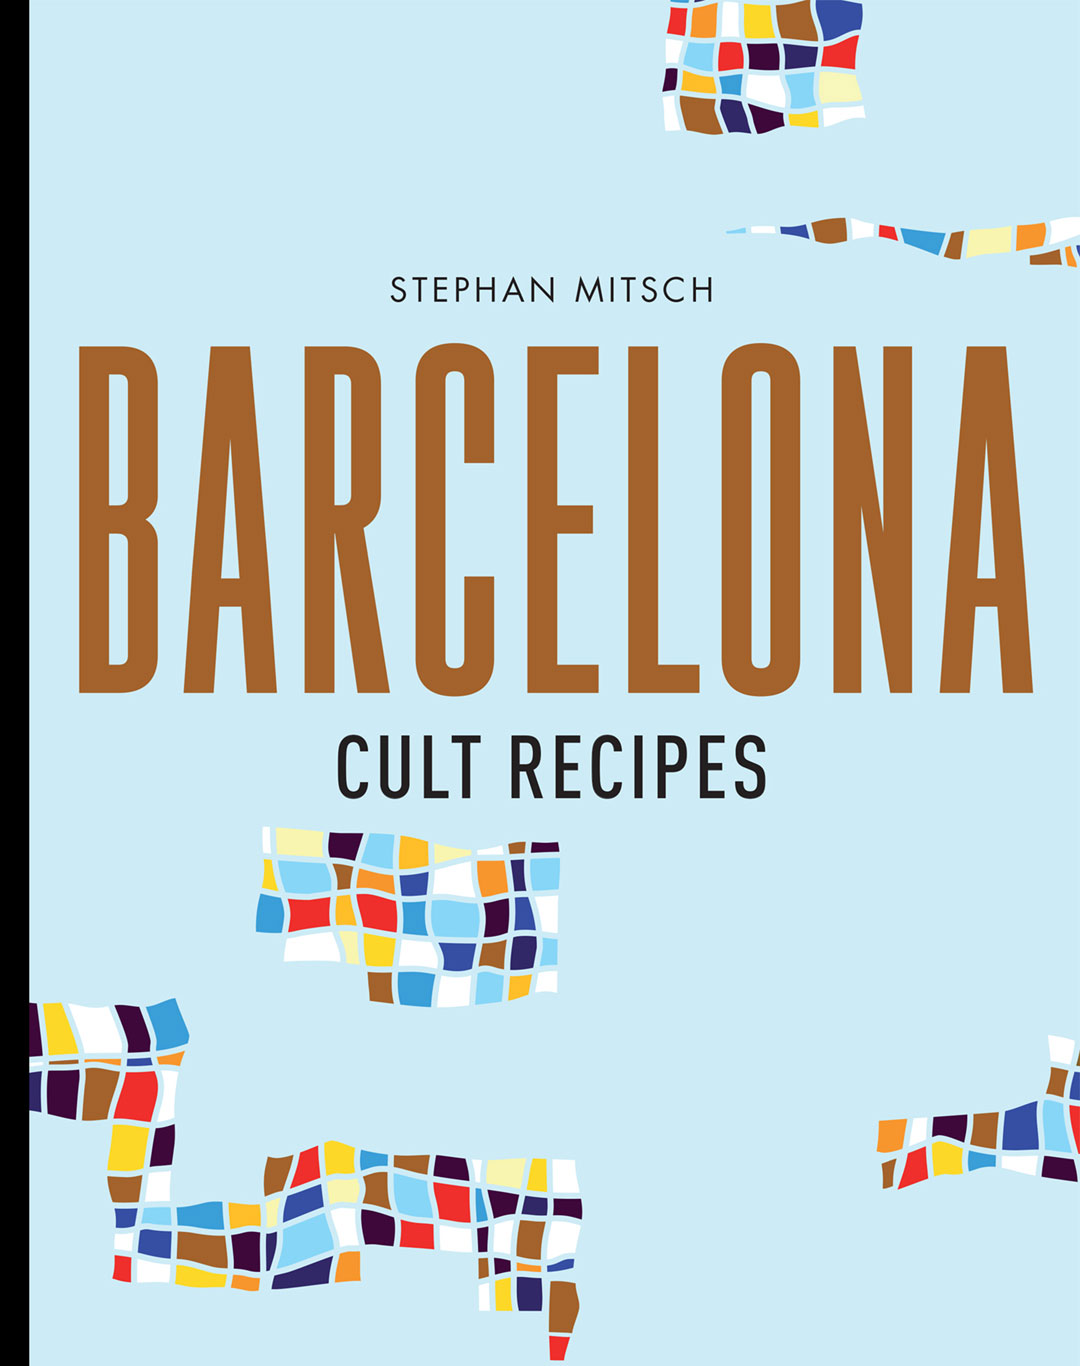 Barcelona Cult Recipes by Stephen Mitsch